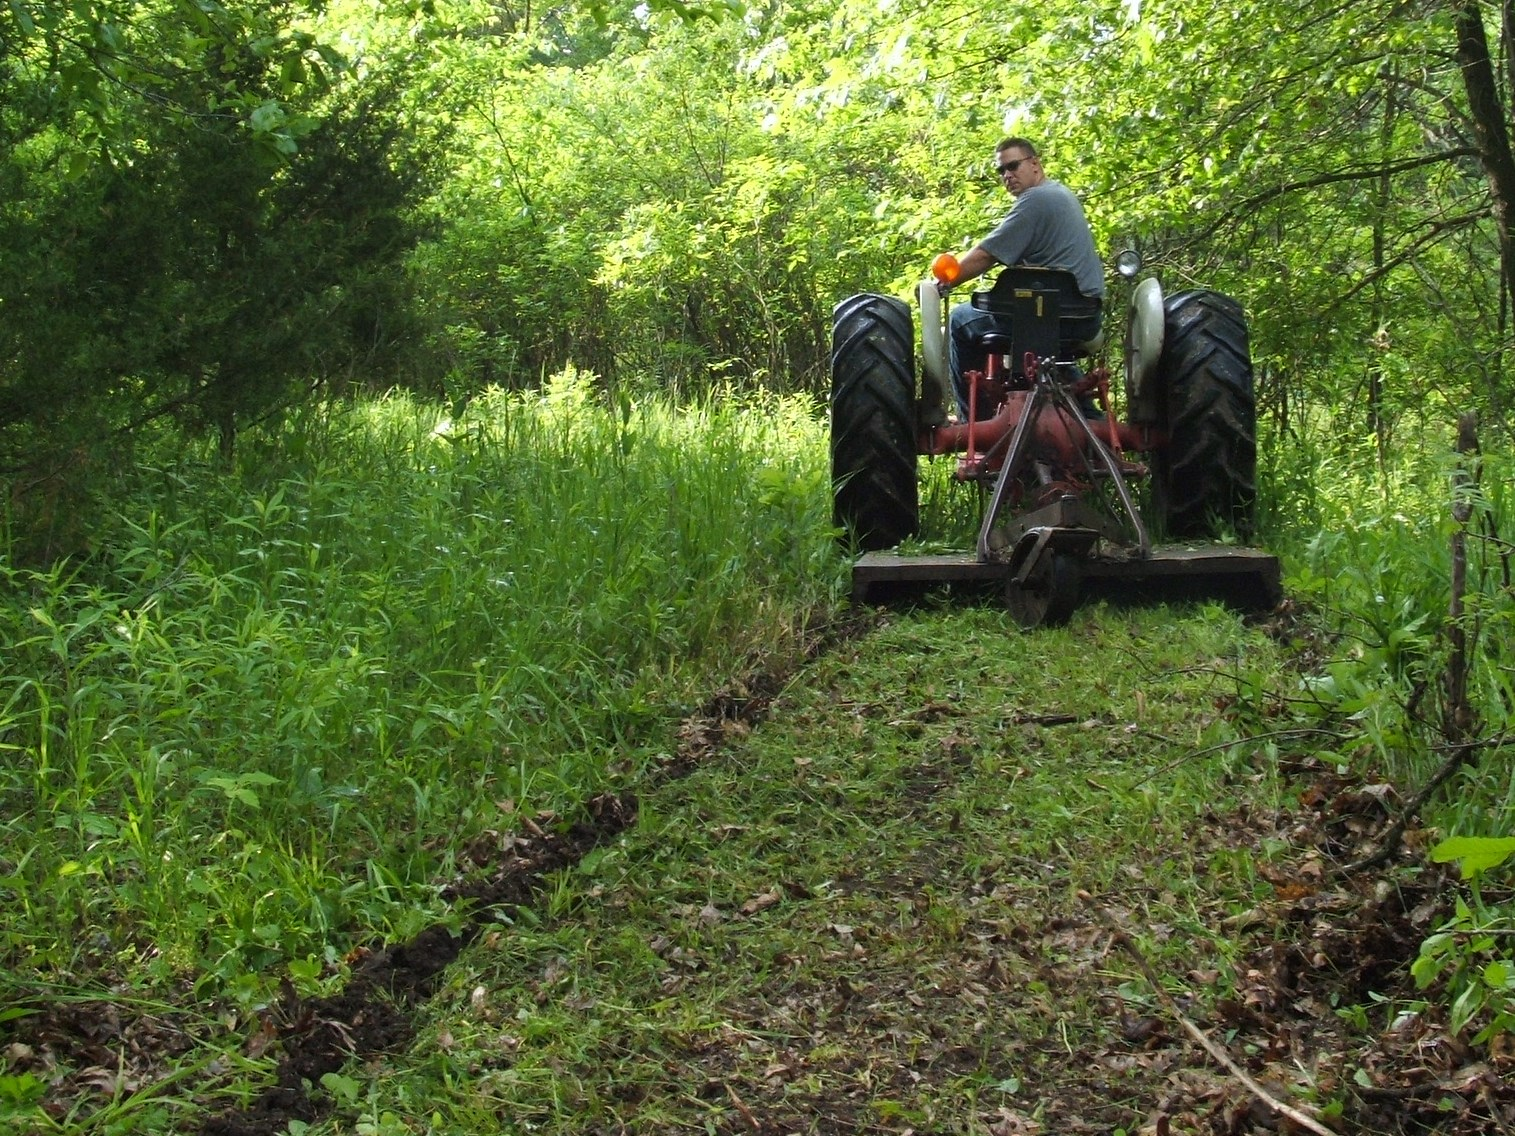 Mowing is a great way to prepare exit and entrance routes.  Mowing and spraying keeps vegetation down for a quiet walk and helps to also keep scent to a minimum.